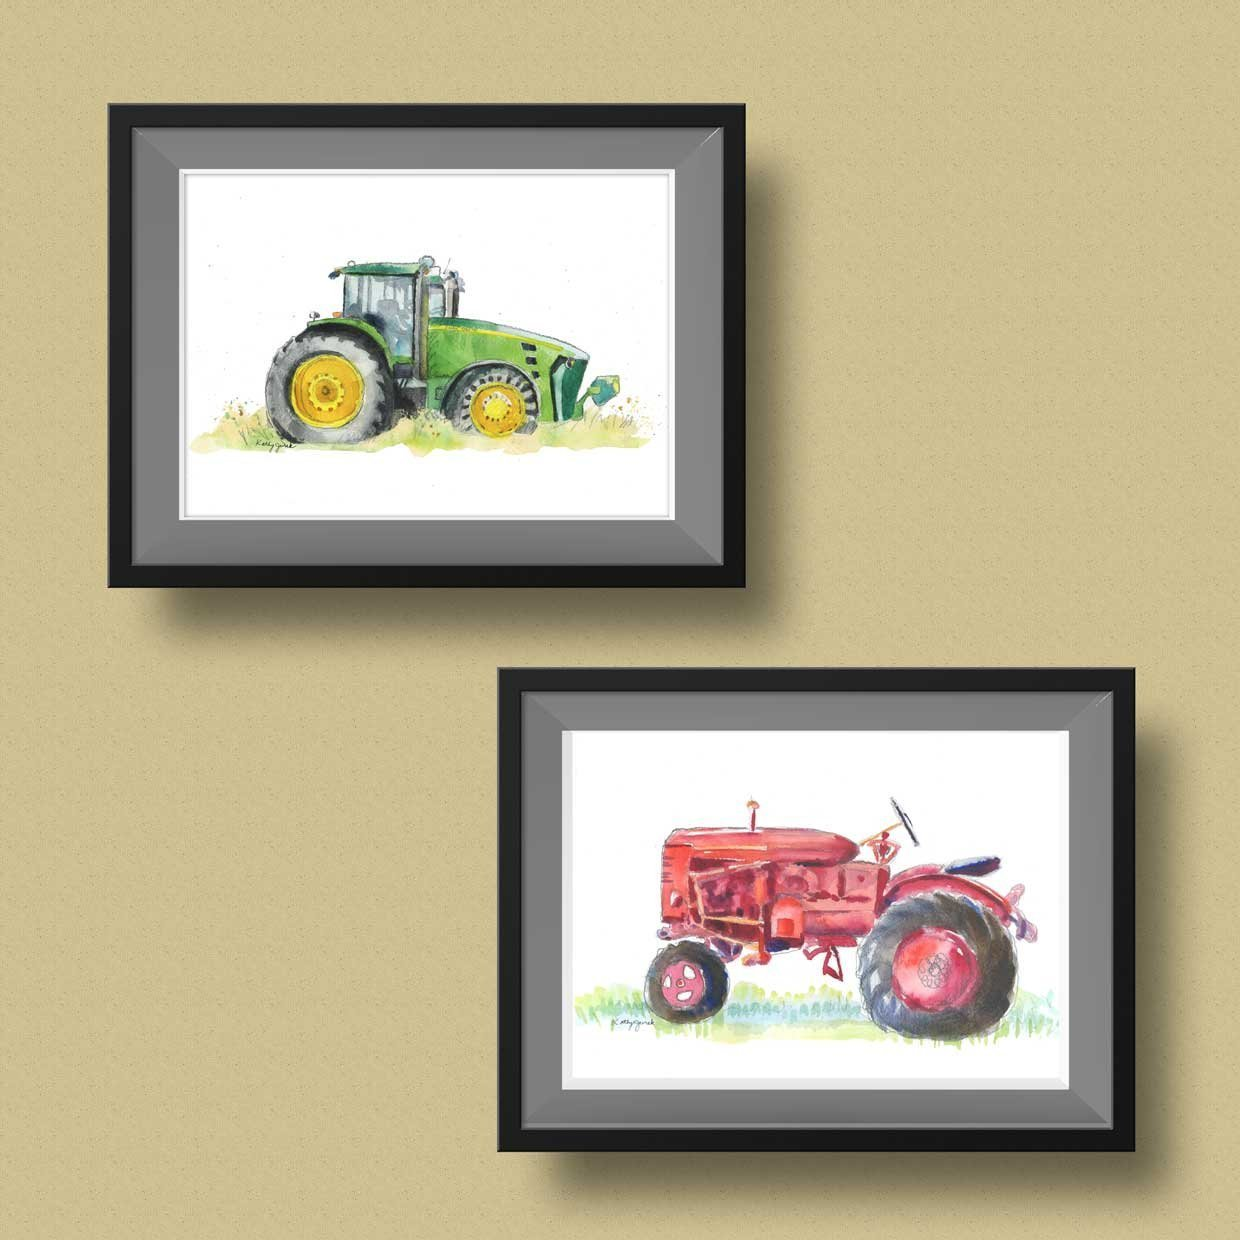 Amazon.com: Green Farm Tractor Wall Art / Tractor Art Print / Truck ...